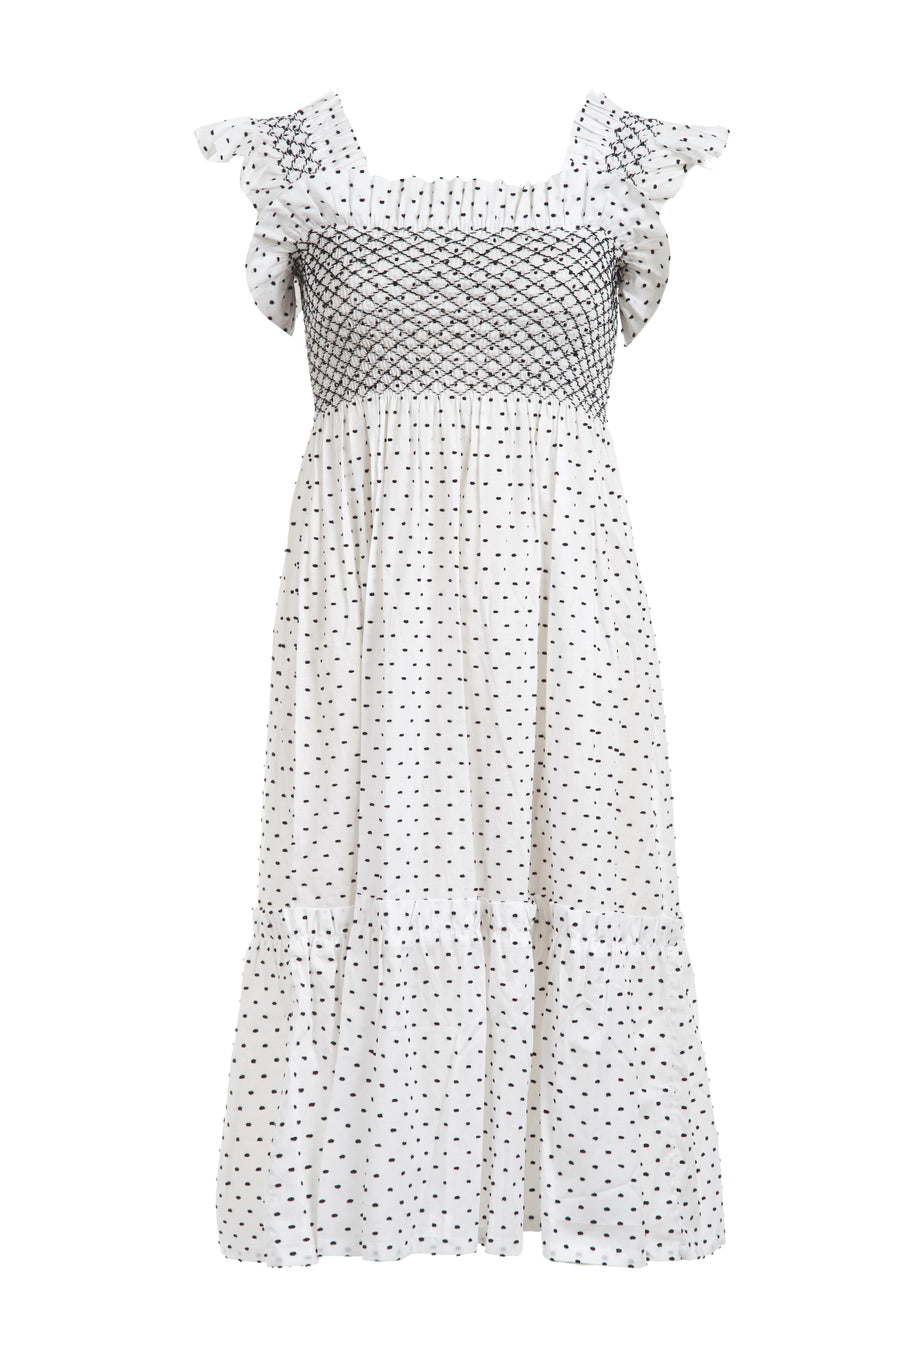 QUEENIE DRESS WHITE WITH BLACK SPOT